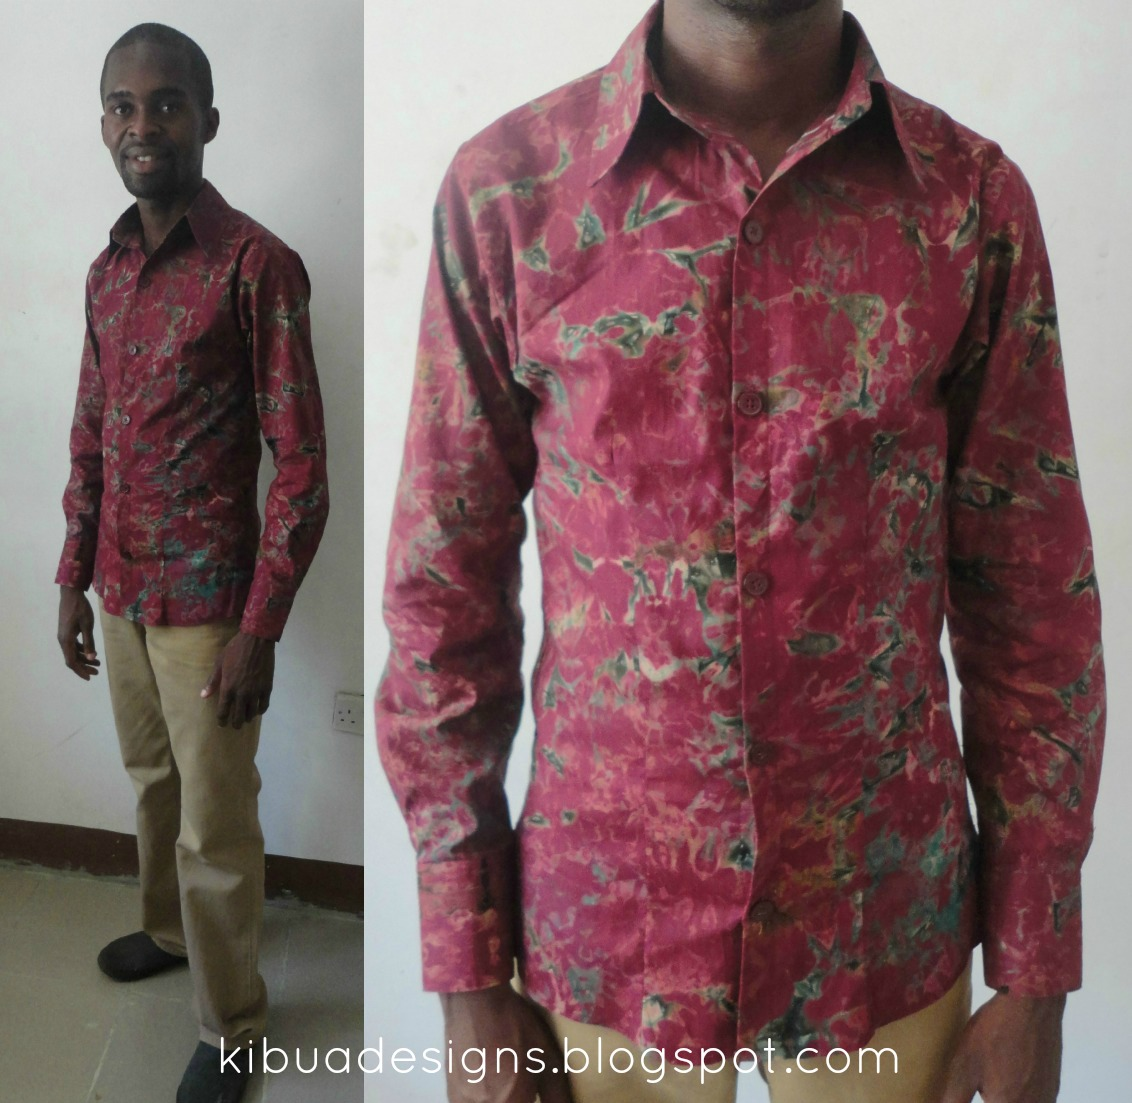 Kibua Designs: BATIK SHIRT